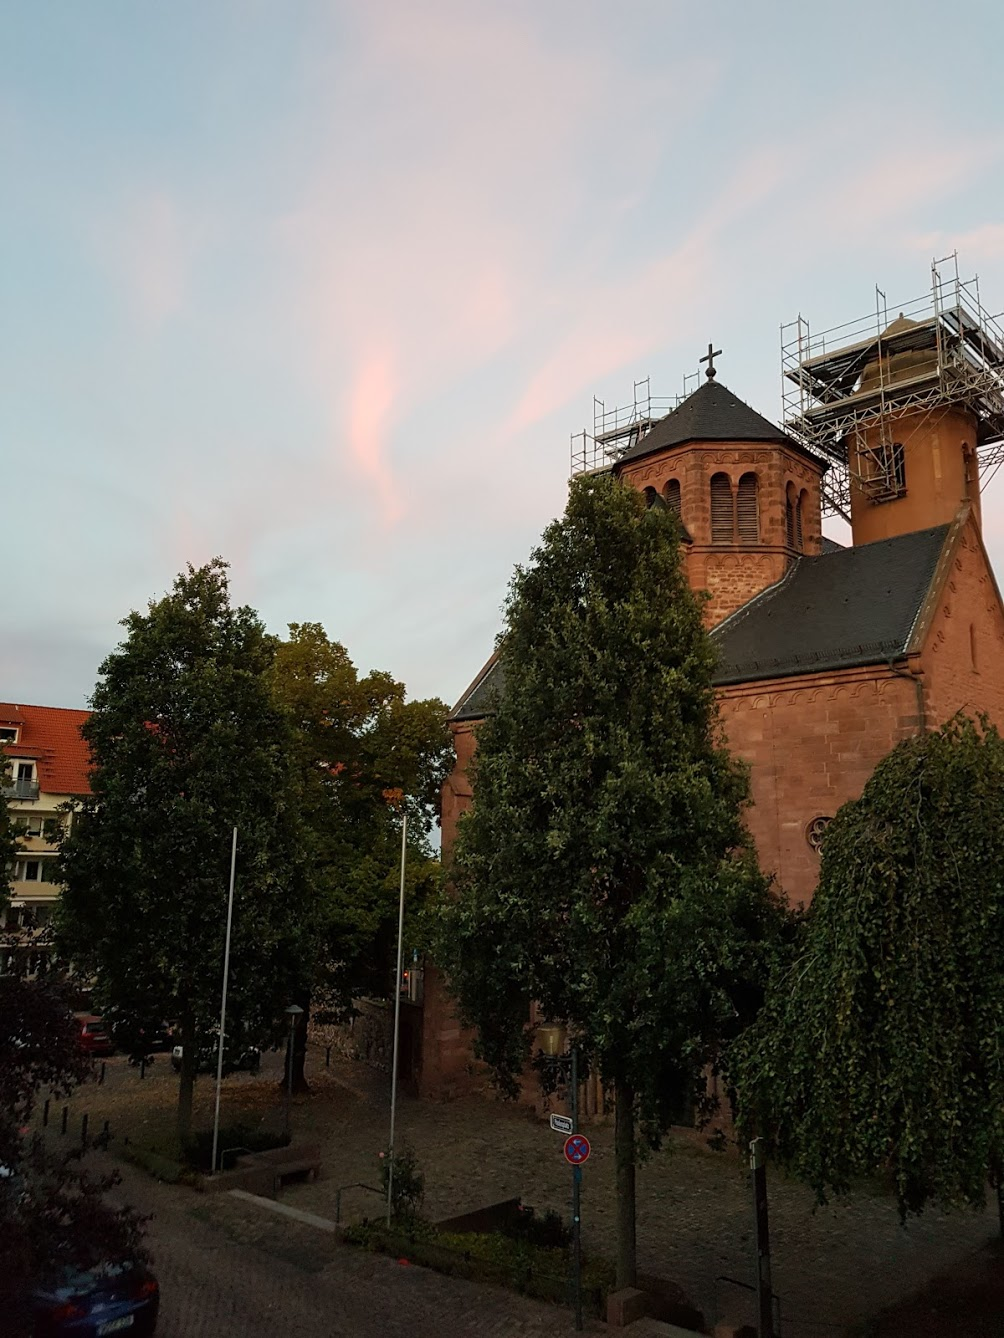 Sonntagnachmittag in Worms, 09. September 2018 - Photo 7.: Gisela Kentmann